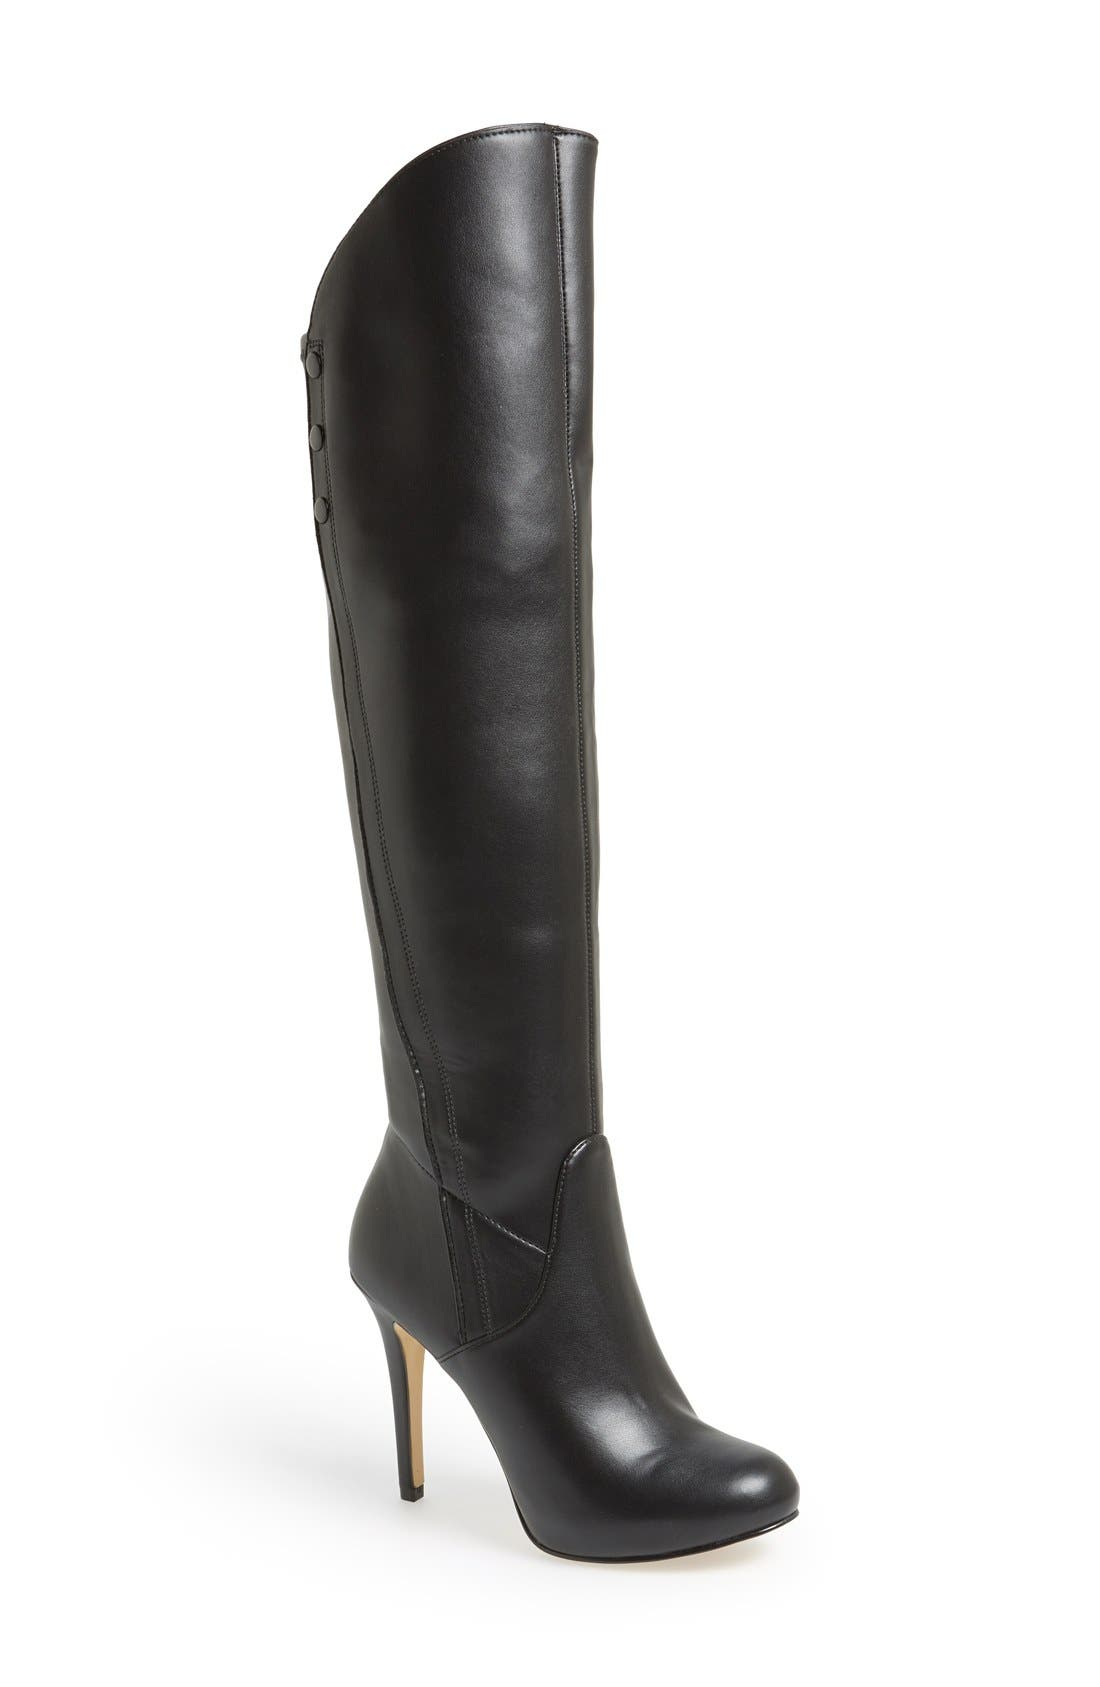 Main Image - Guess 'Enesta' Platform Over The Knee Boot (Women)